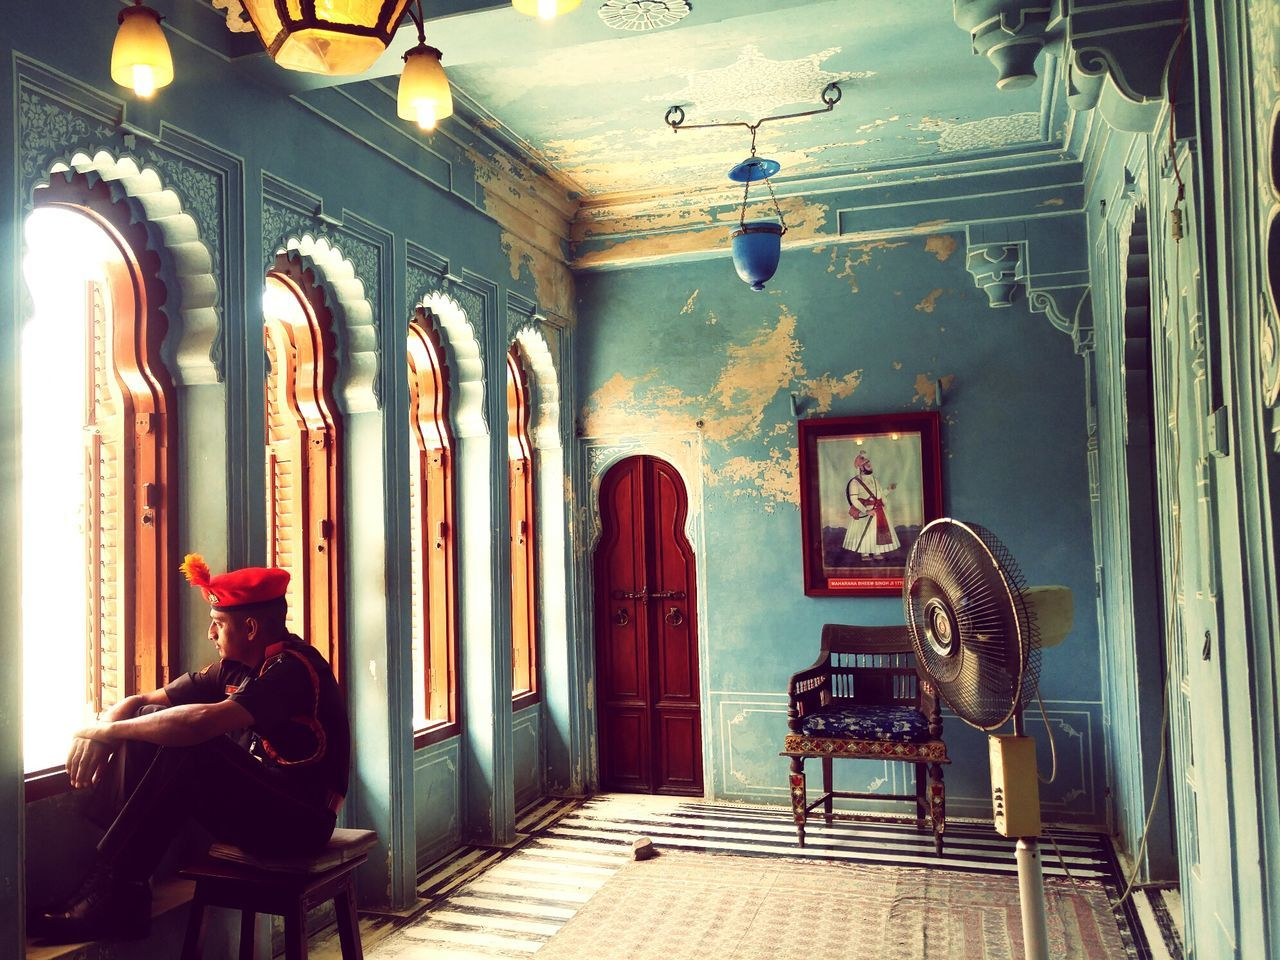 Indoors  Archival Illuminated Architecture Day Fort Travel Photography Incredible India Ancient Old Old Buildings Guard Duty In Deep Thought Summer Blue City, Jodhpur Adult Single Old Fashioned. Lamps Standing Fan Wooden Doors